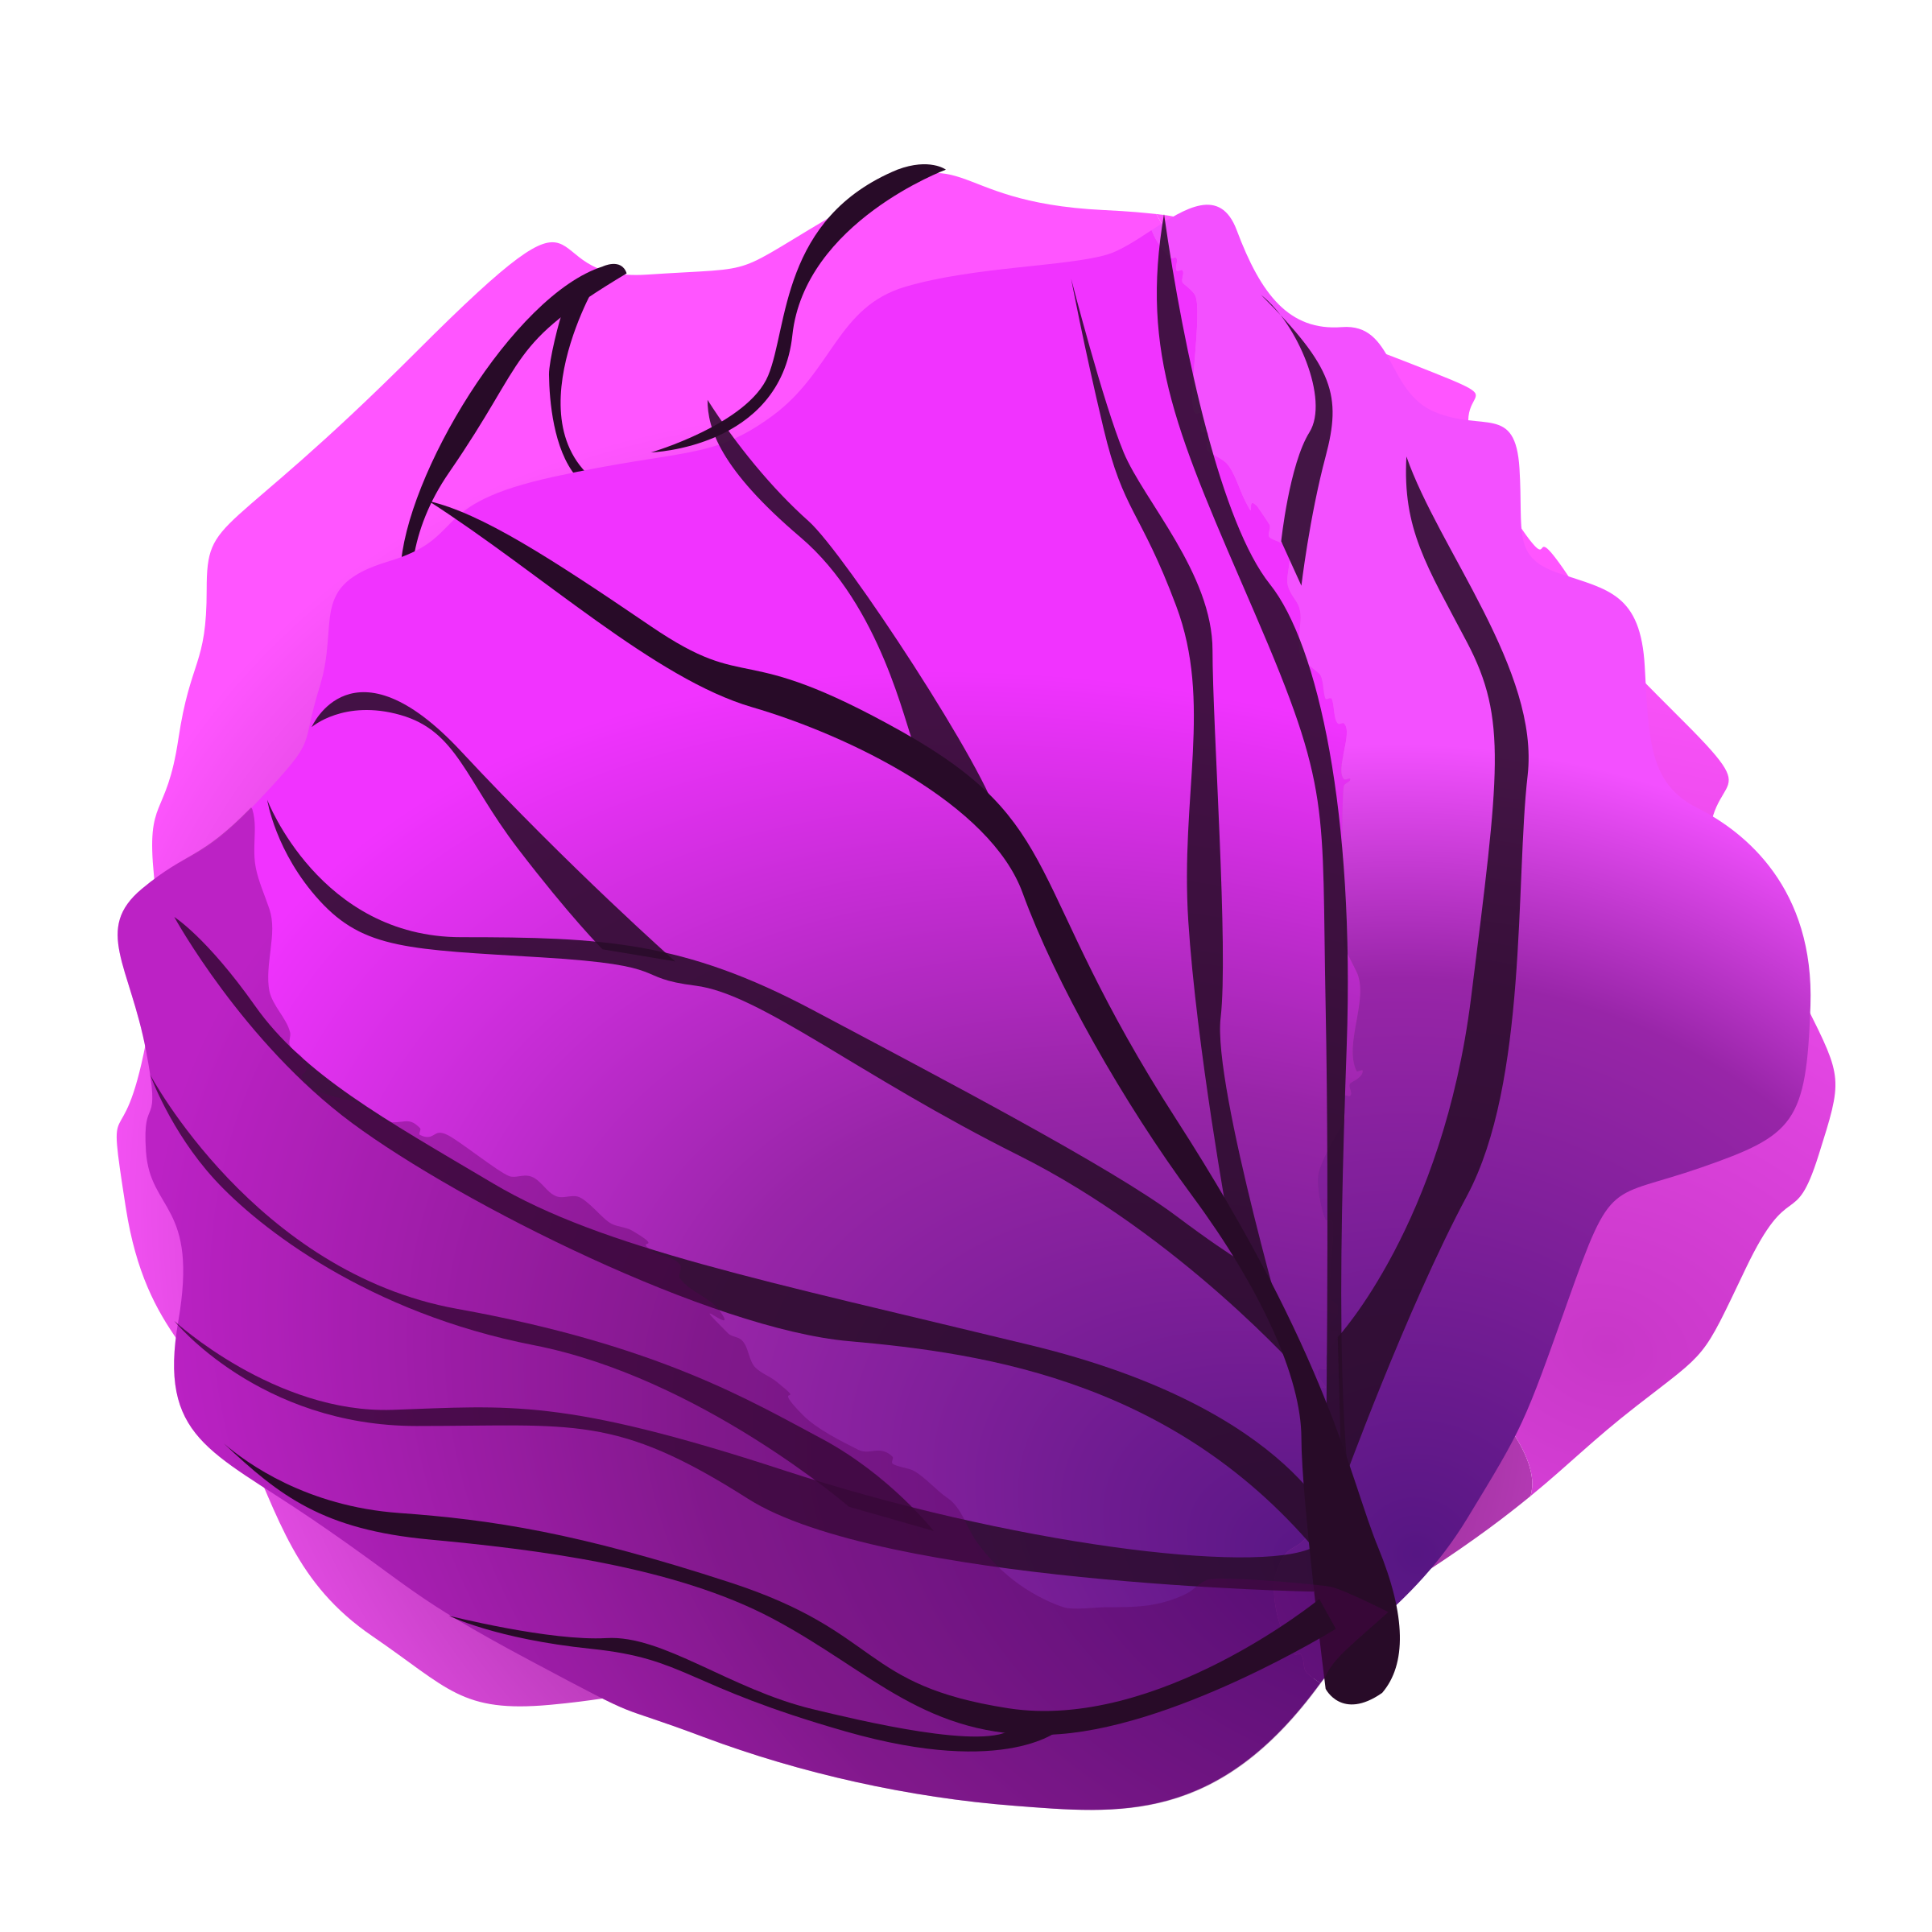 Red cabbage clipart.